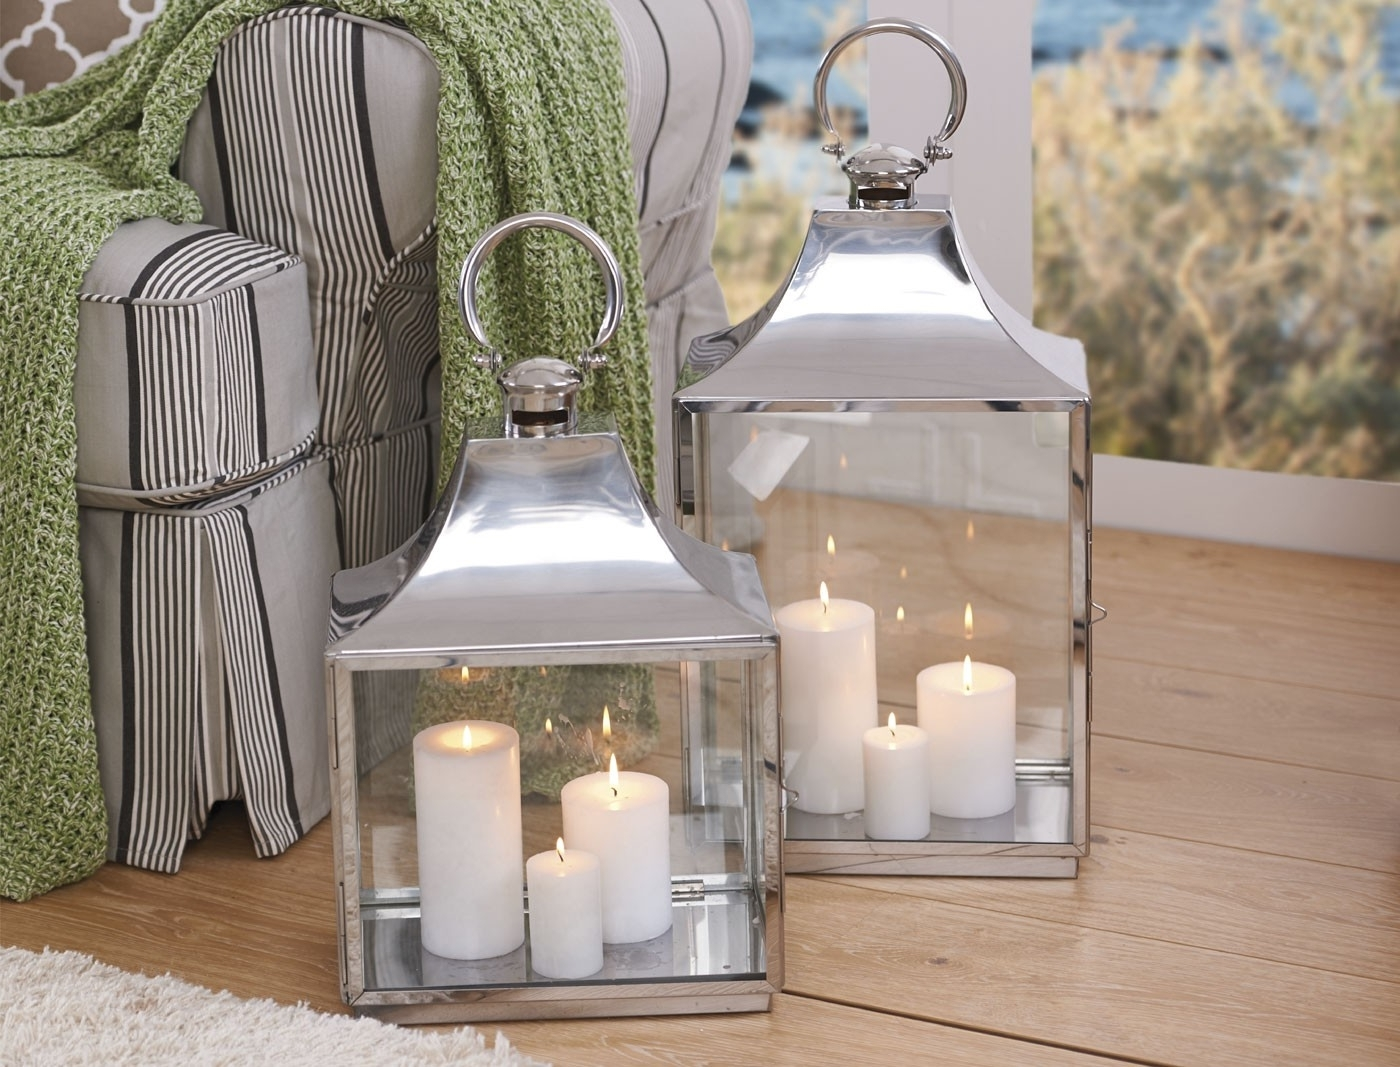 Household Pillar Candles – Ivory Inside Fashionable Outdoor Lanterns And Votives (Gallery 8 of 20)